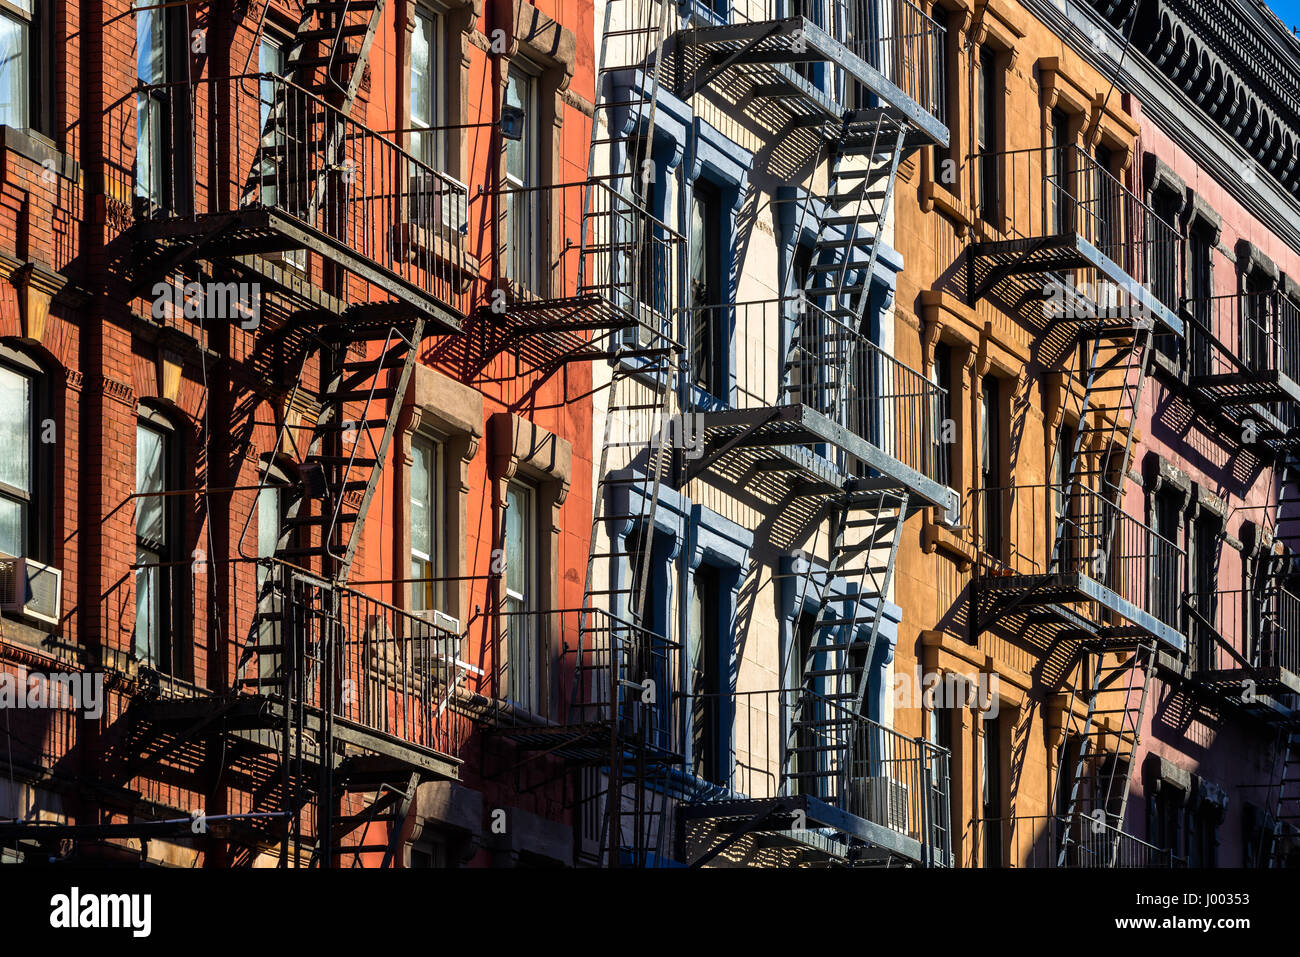 Soho colorés façades peintes avec le feu s'échappe. Manhattan, New York City Photo Stock